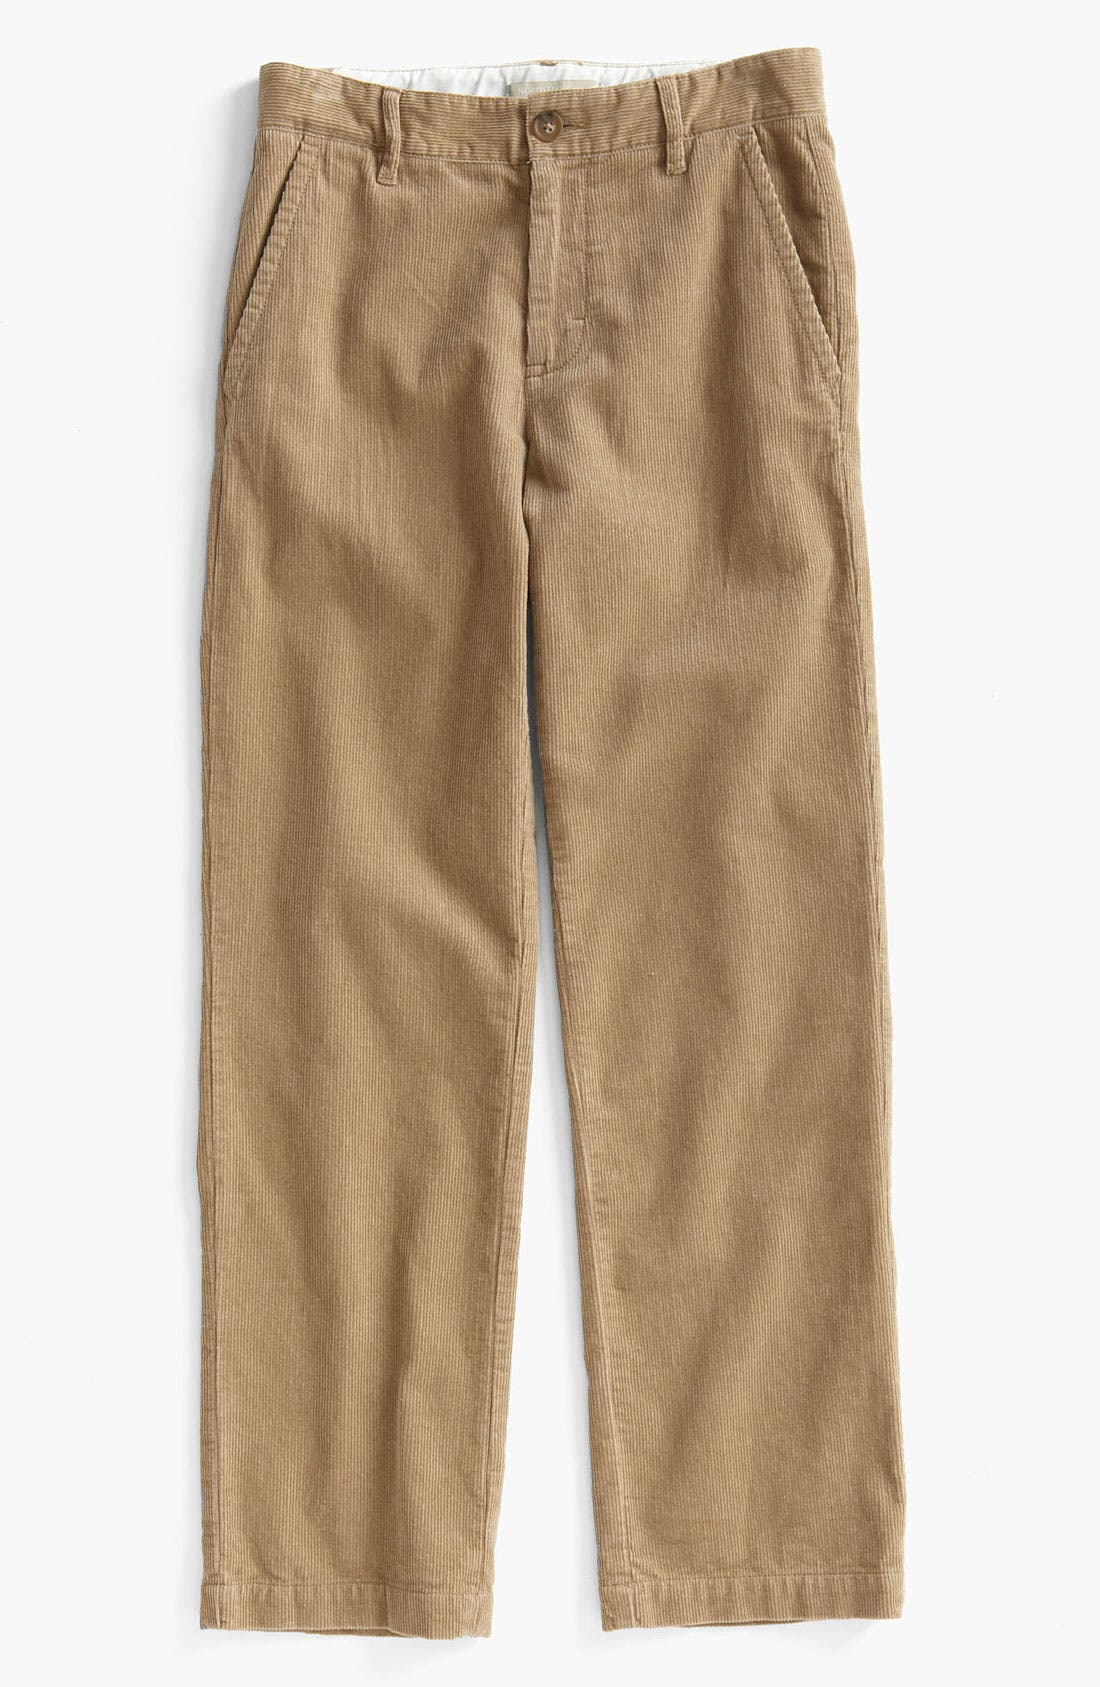 Main Image - Nordstrom 'Edward' Corduroy Trousers (Big Boys)